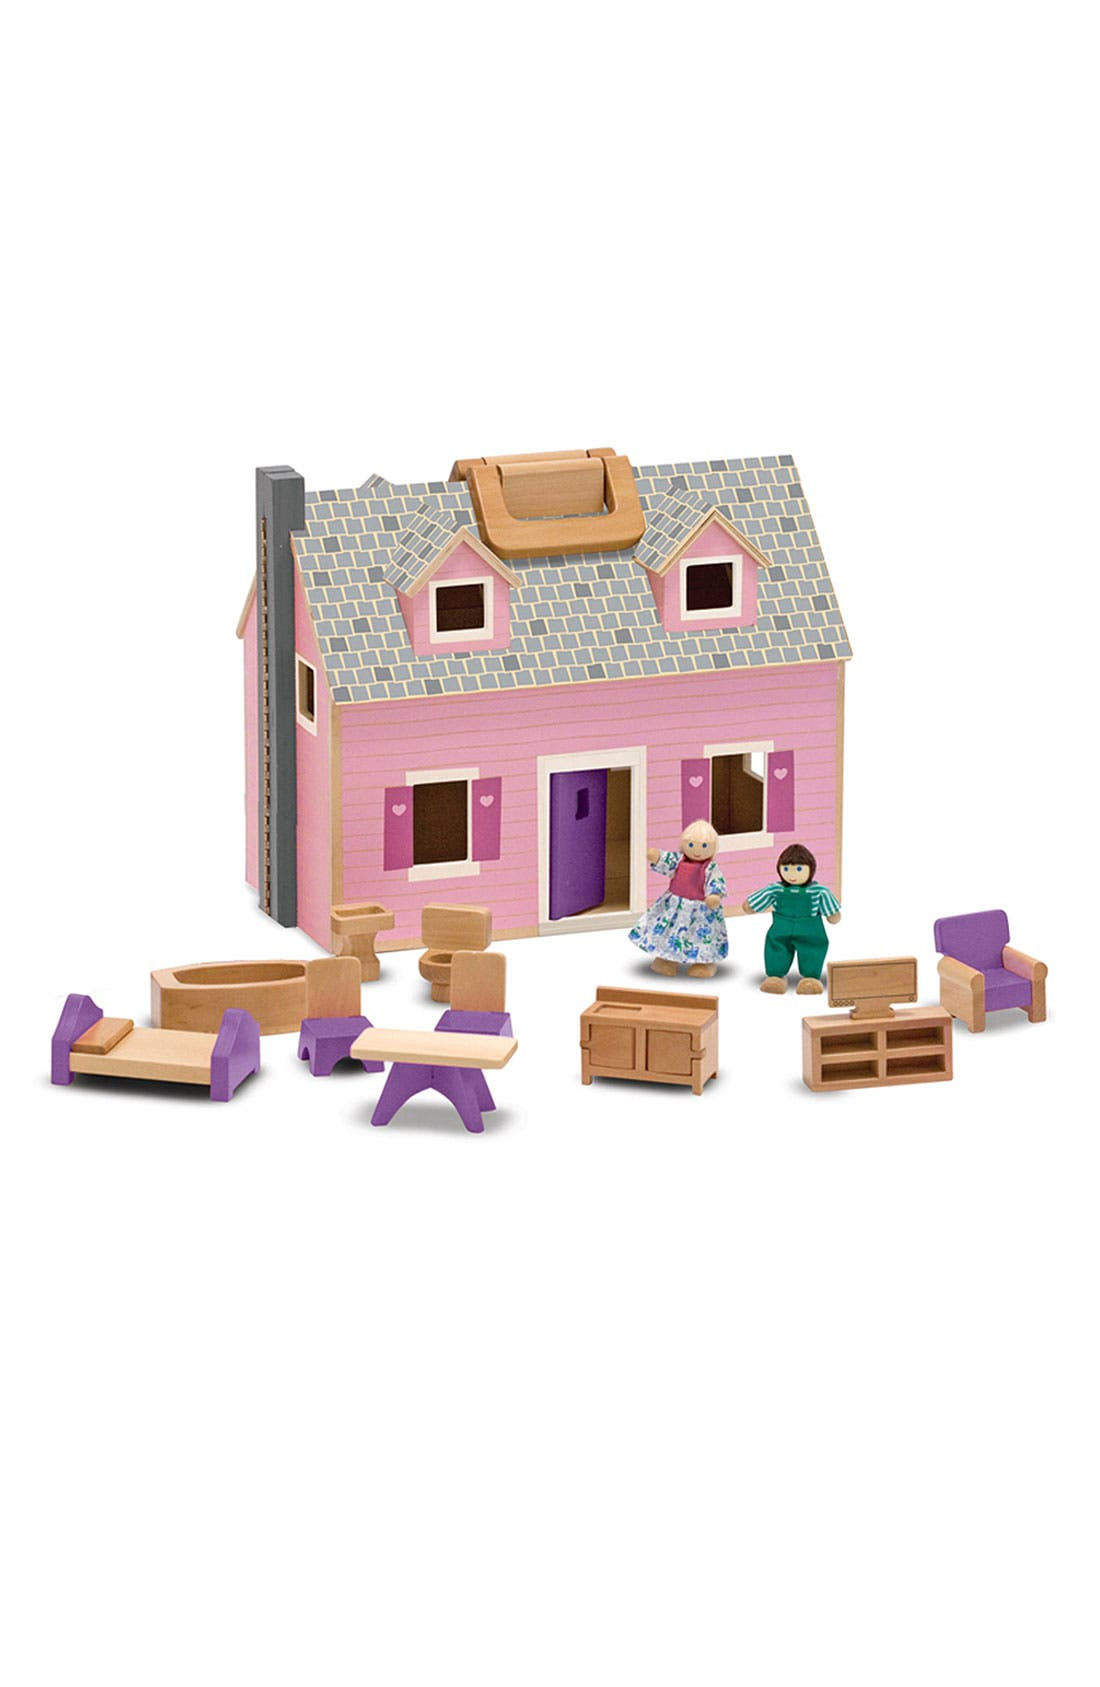 'Fold & Go' Play Set,                         Main,                         color, WOOD/ PINK